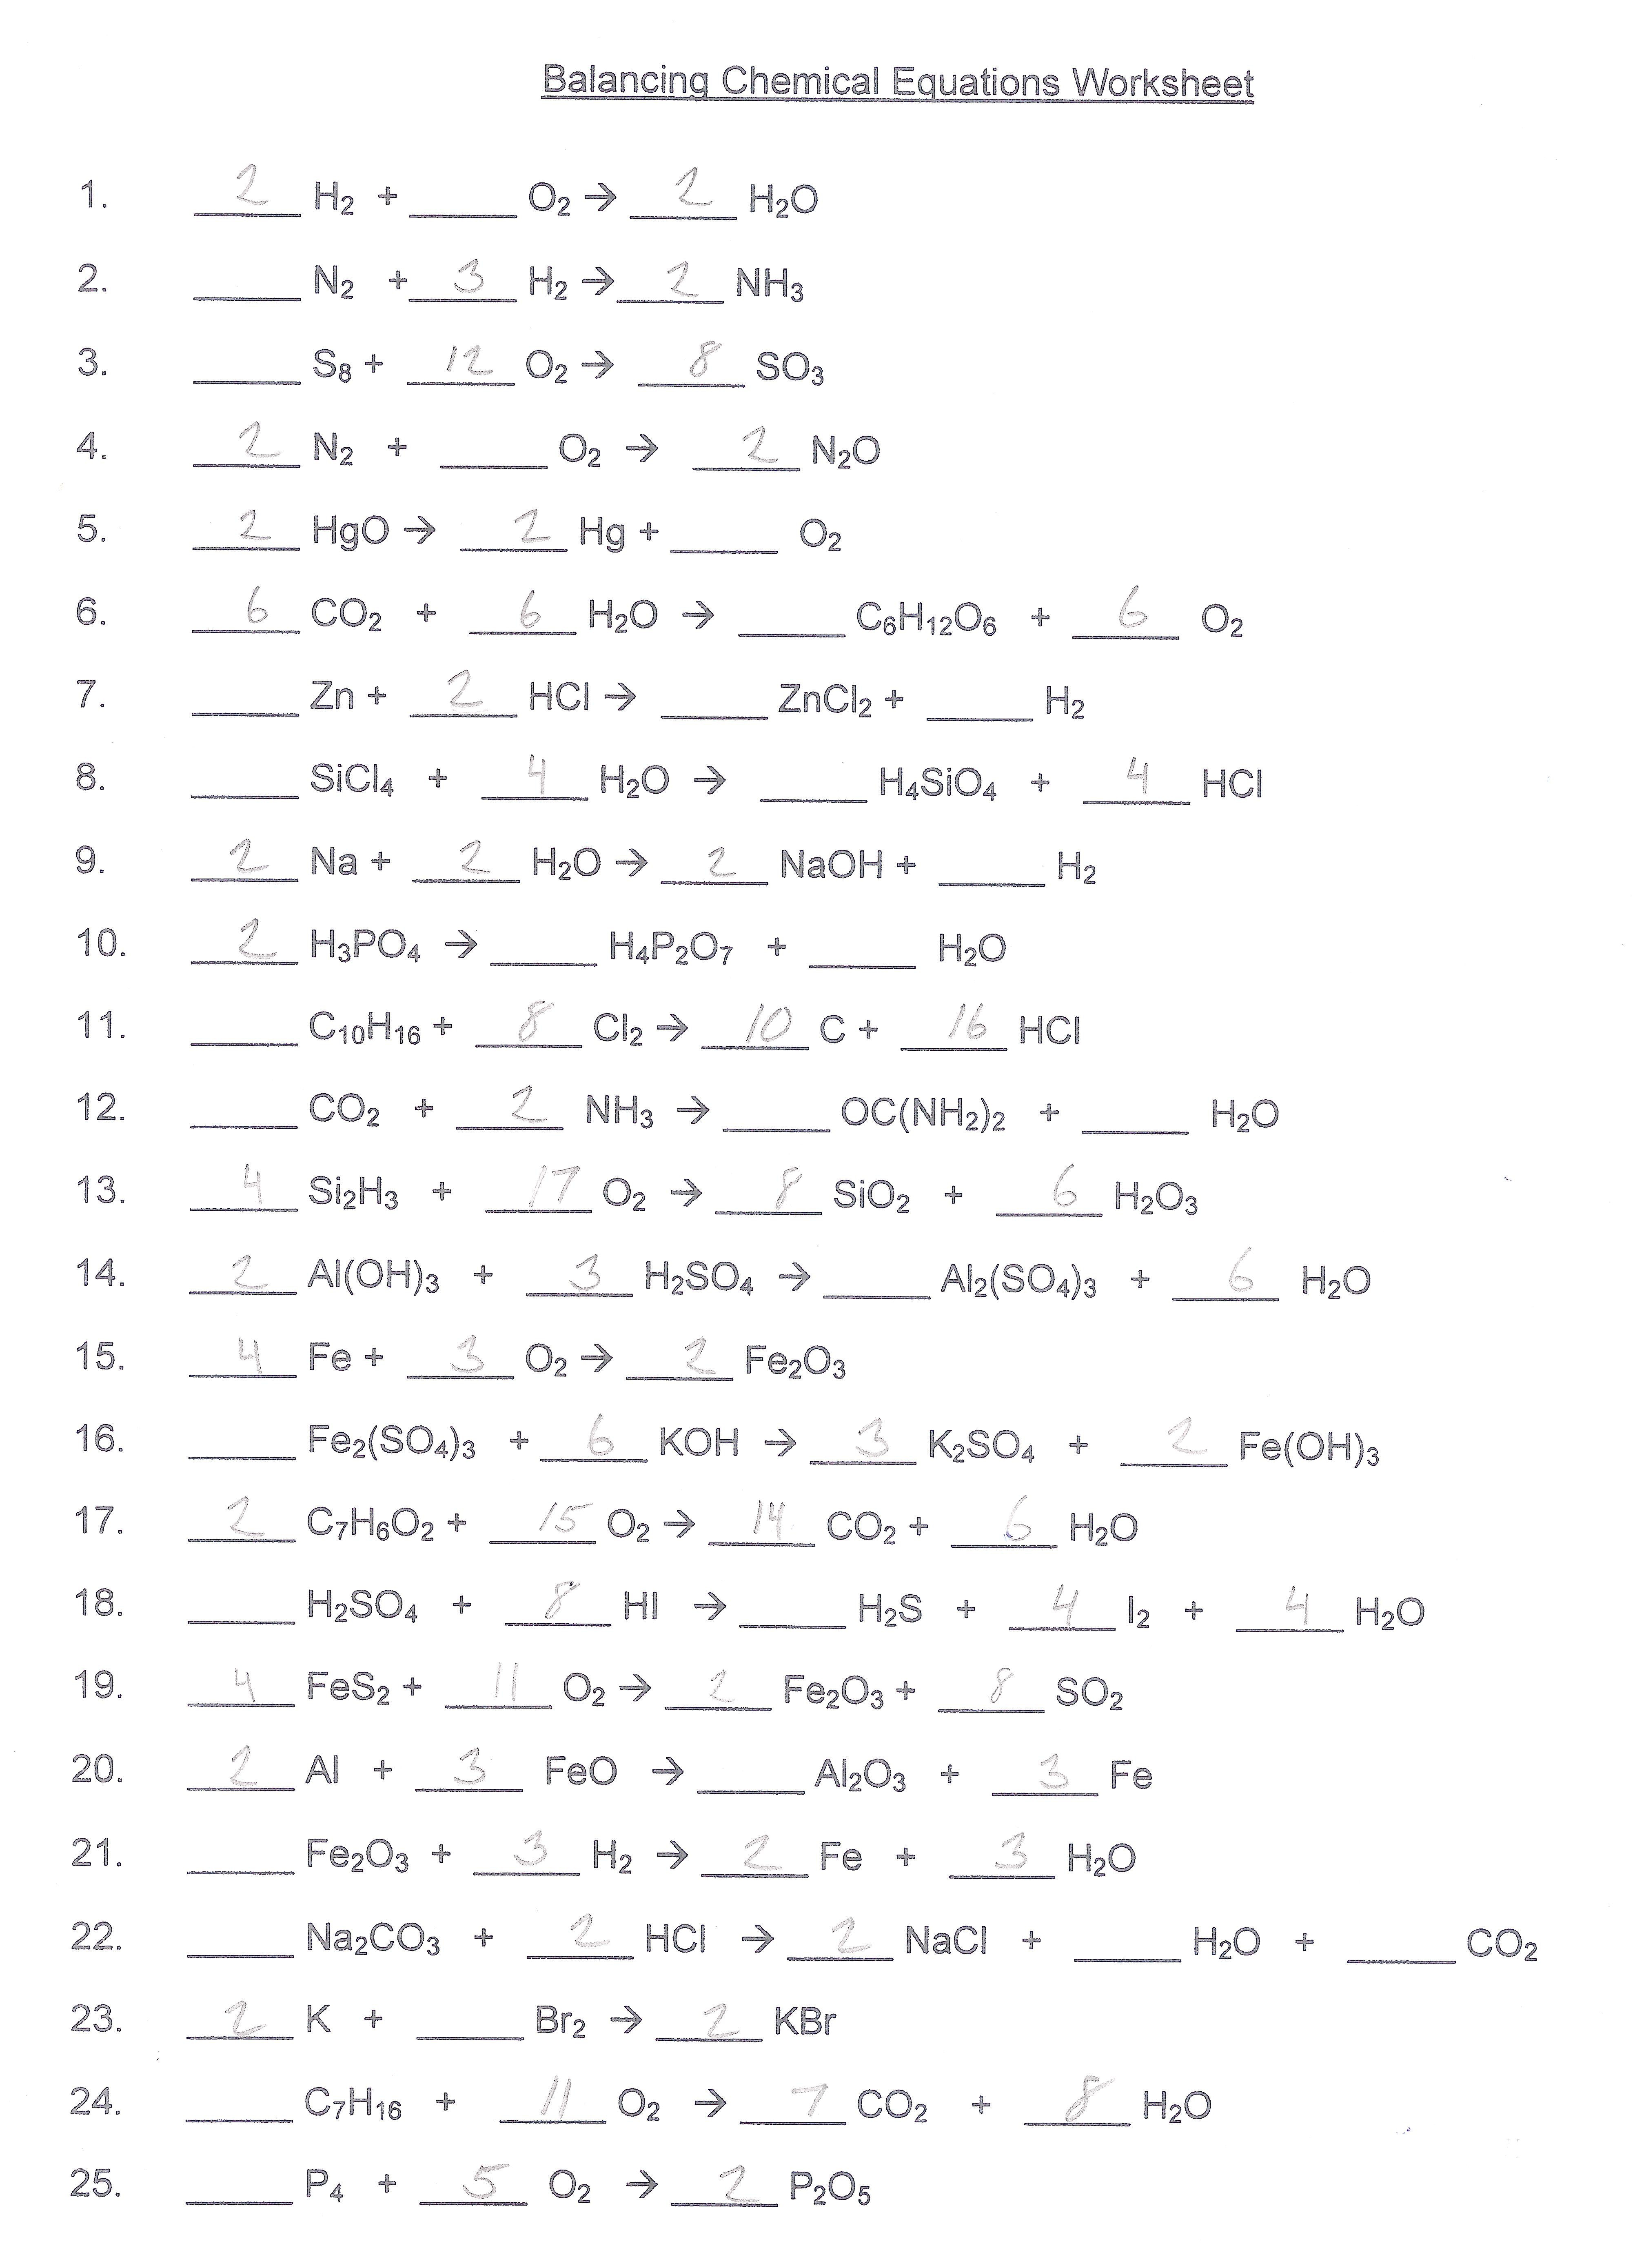 Worksheet 11 1 Balancing Skeleton Equations 621487